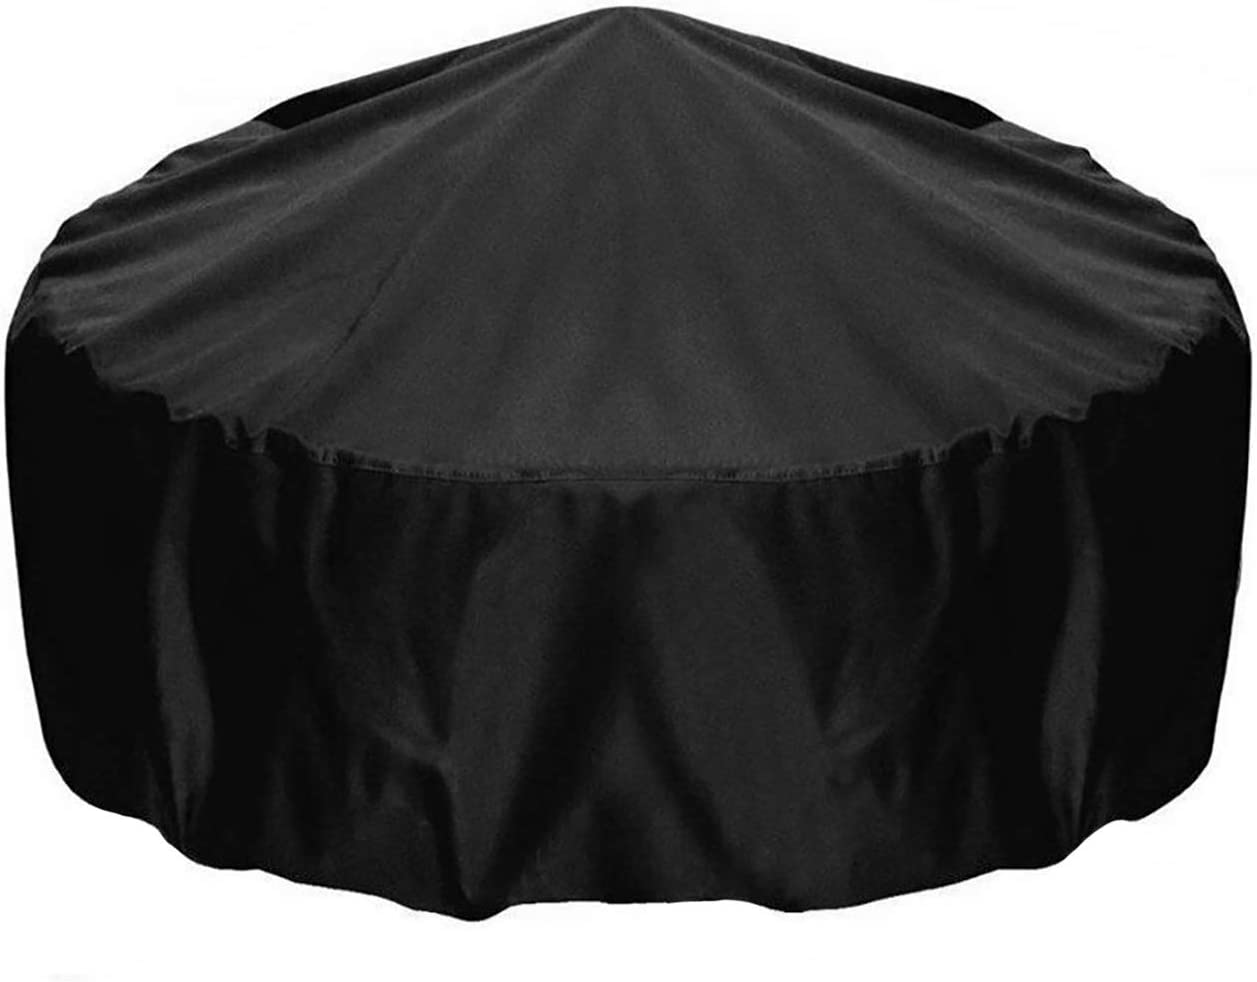 2Krmstr Fire Pit Cover Round, 3434 Inch Heavy Duty Patio Cover Gas Fire Pit Cover with PU Coating, Waterproof Weatherproof All-Season Protection Furniture Covers